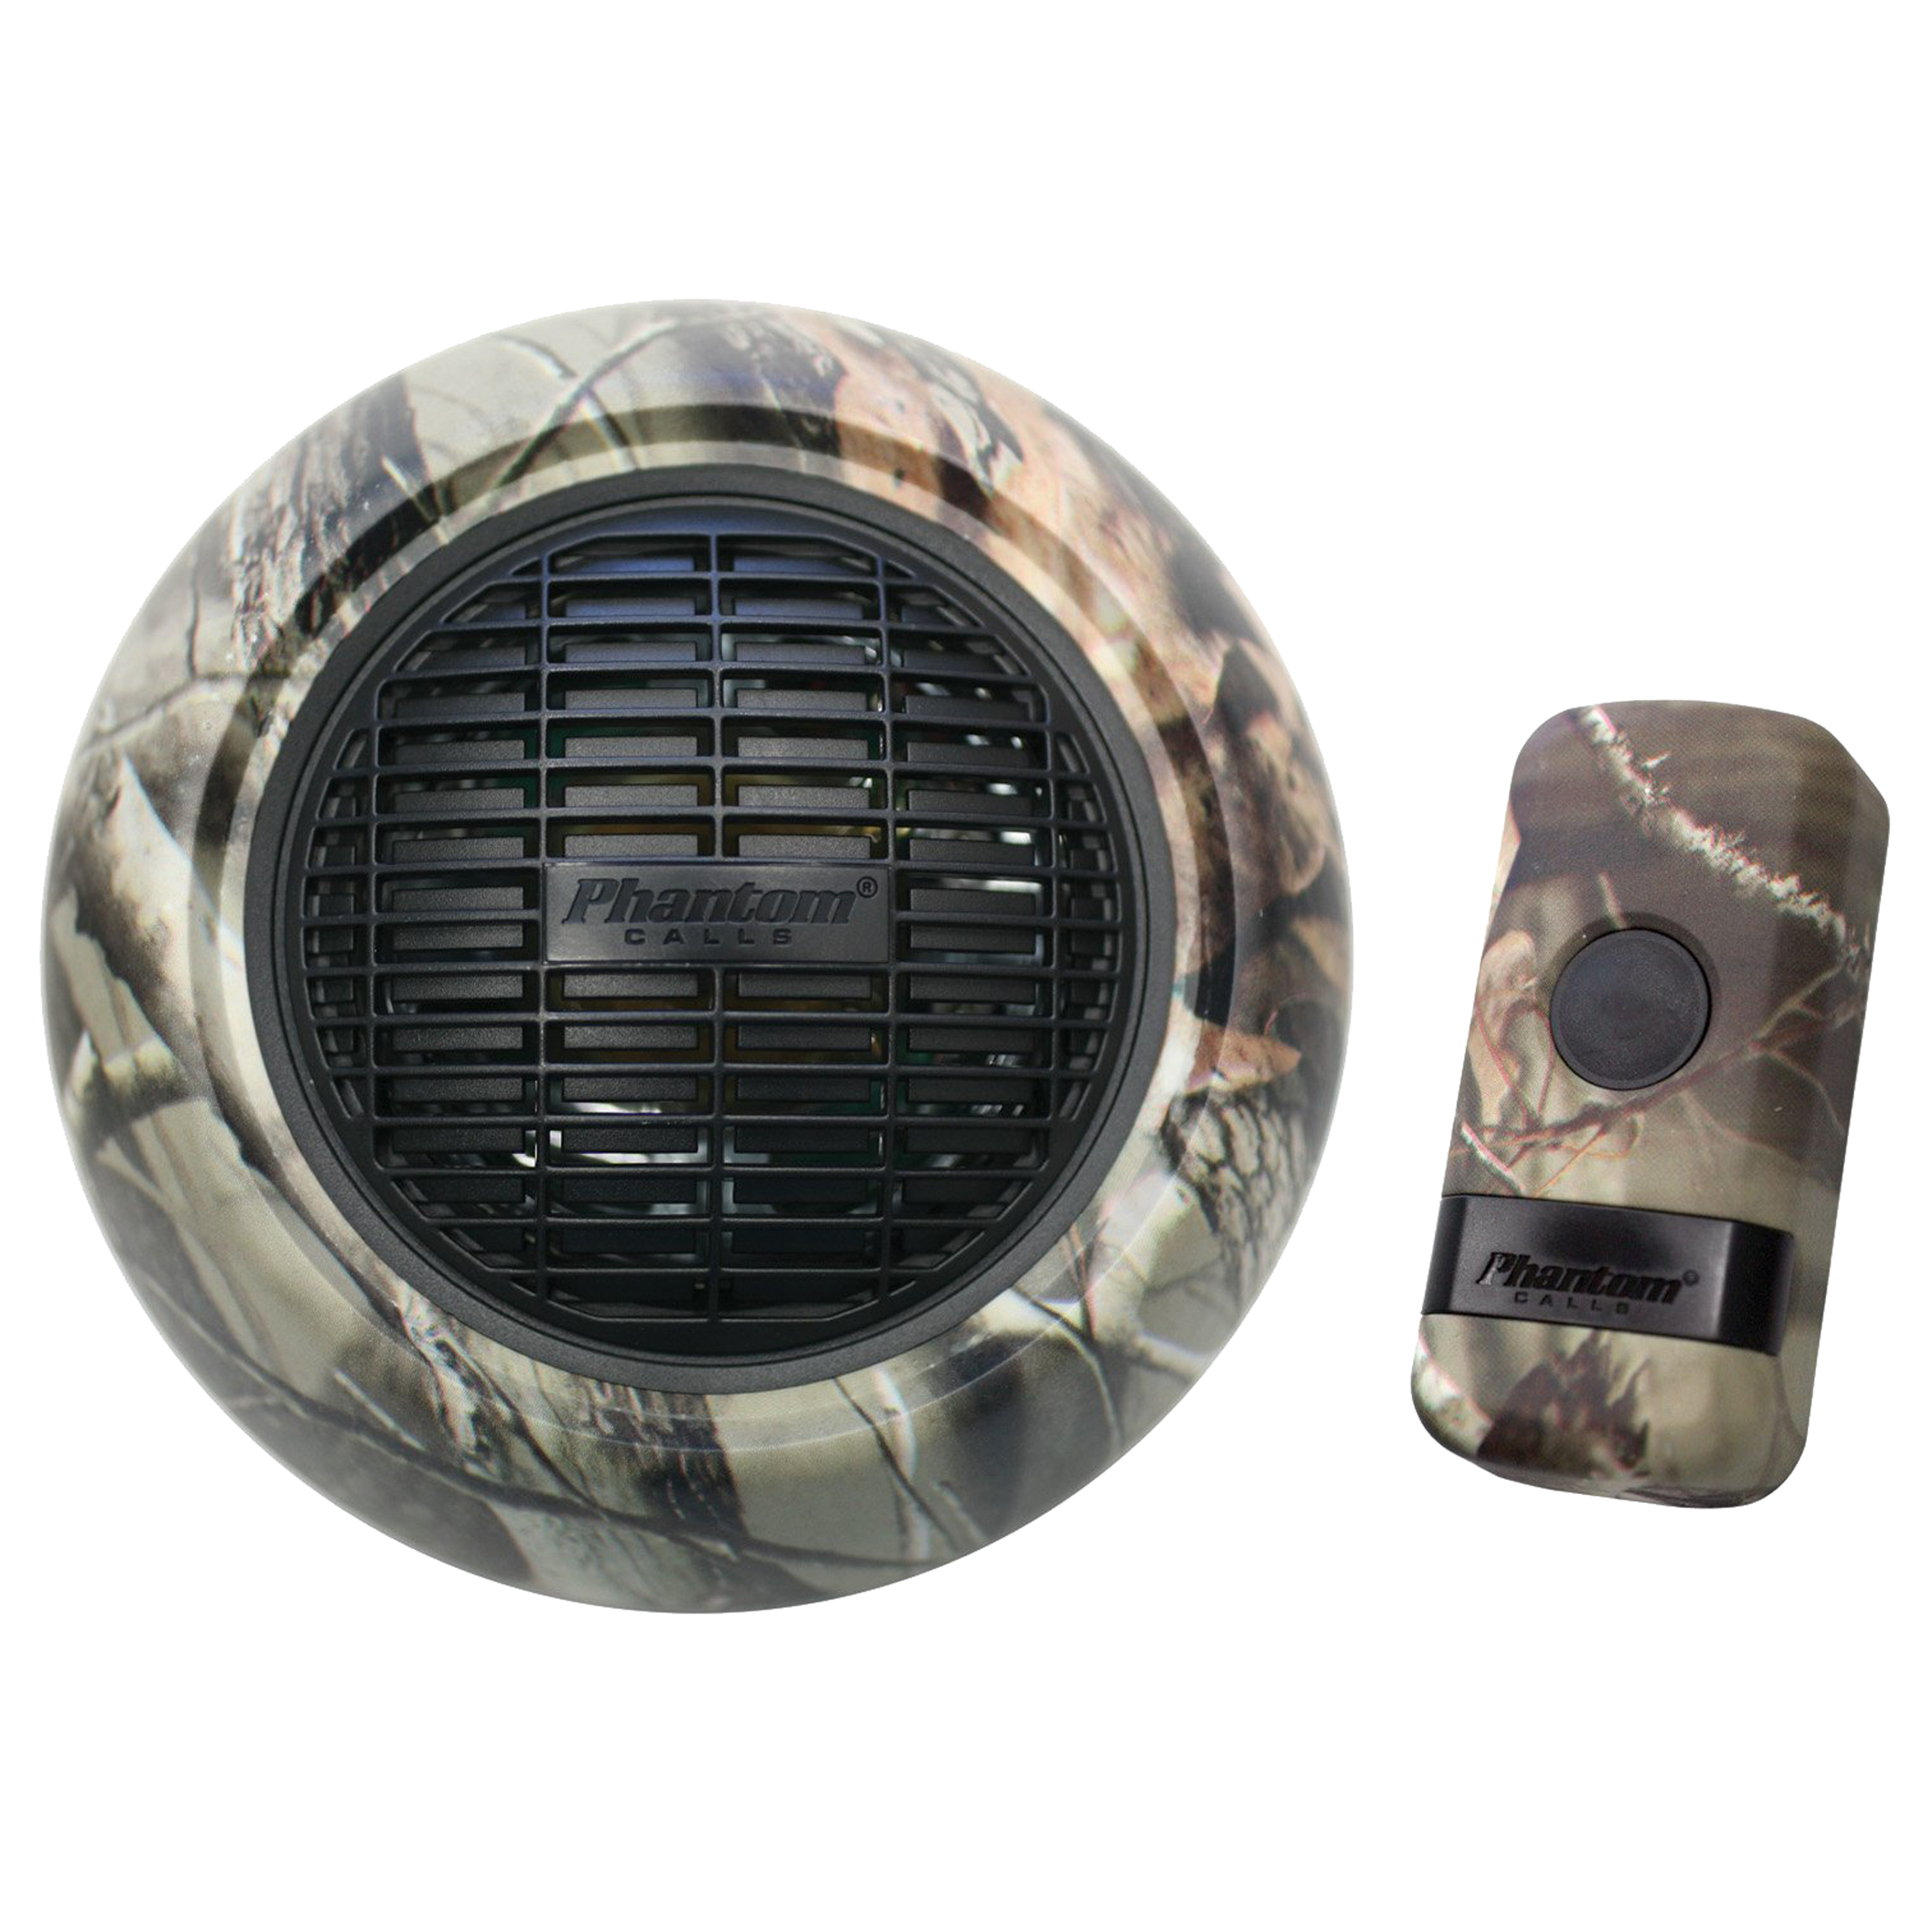 Extreme Dimension Wildlife Sportsman's Wireless Doorbell Camo